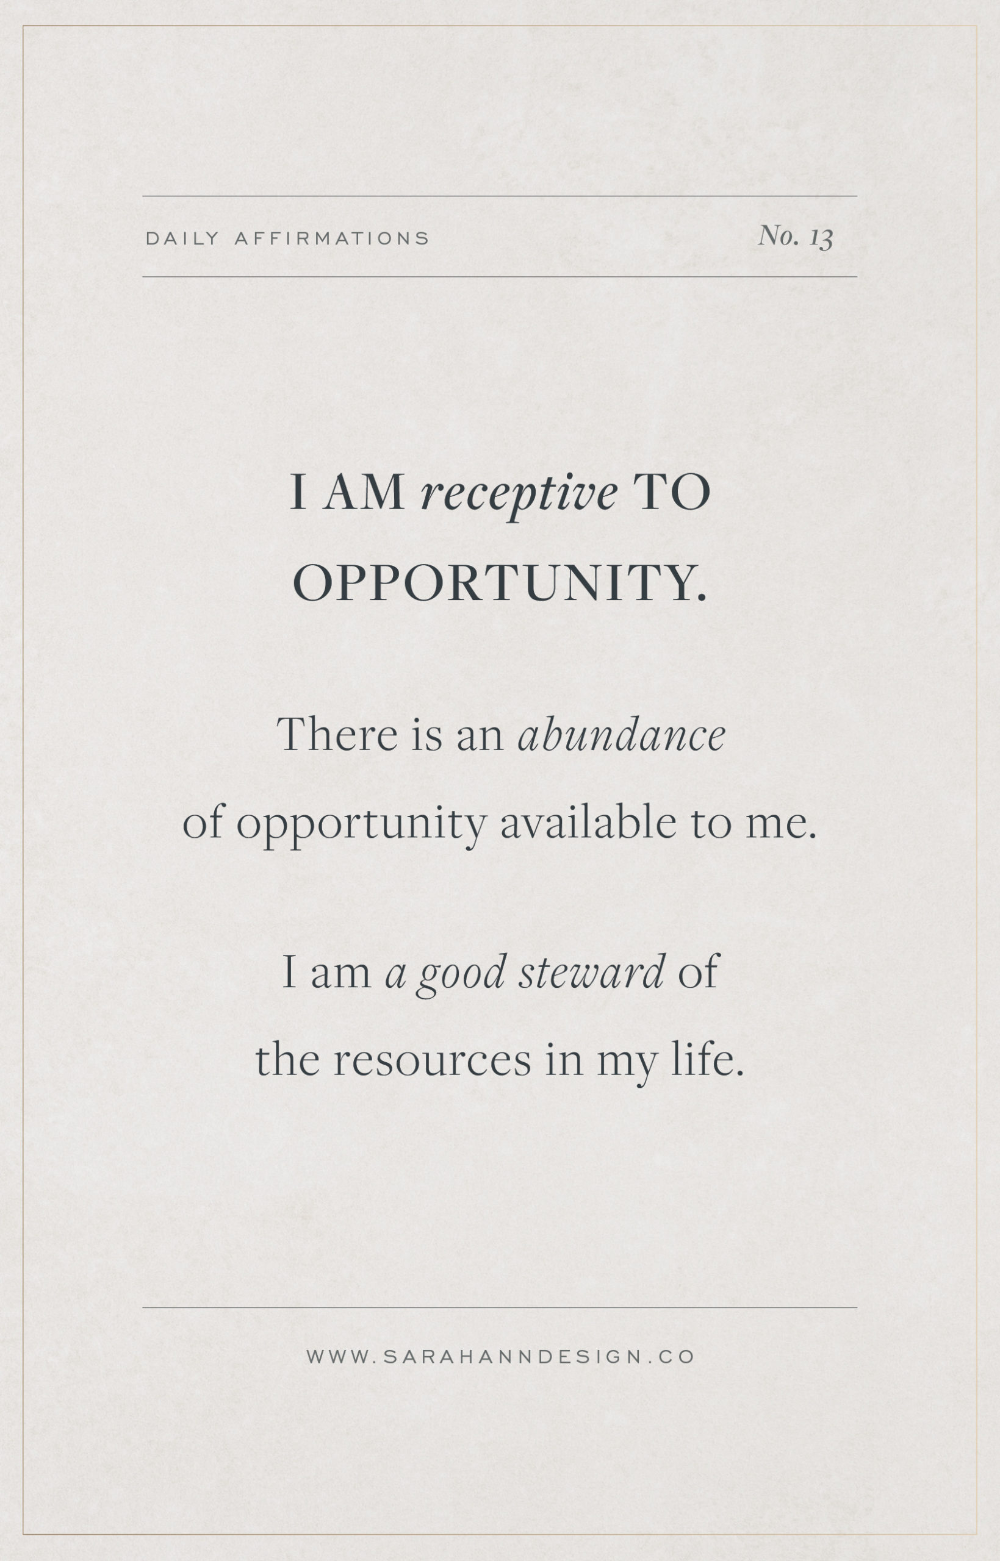 Affirmations for Creatives // 23 Daily Affirmations for Creative Inspiration